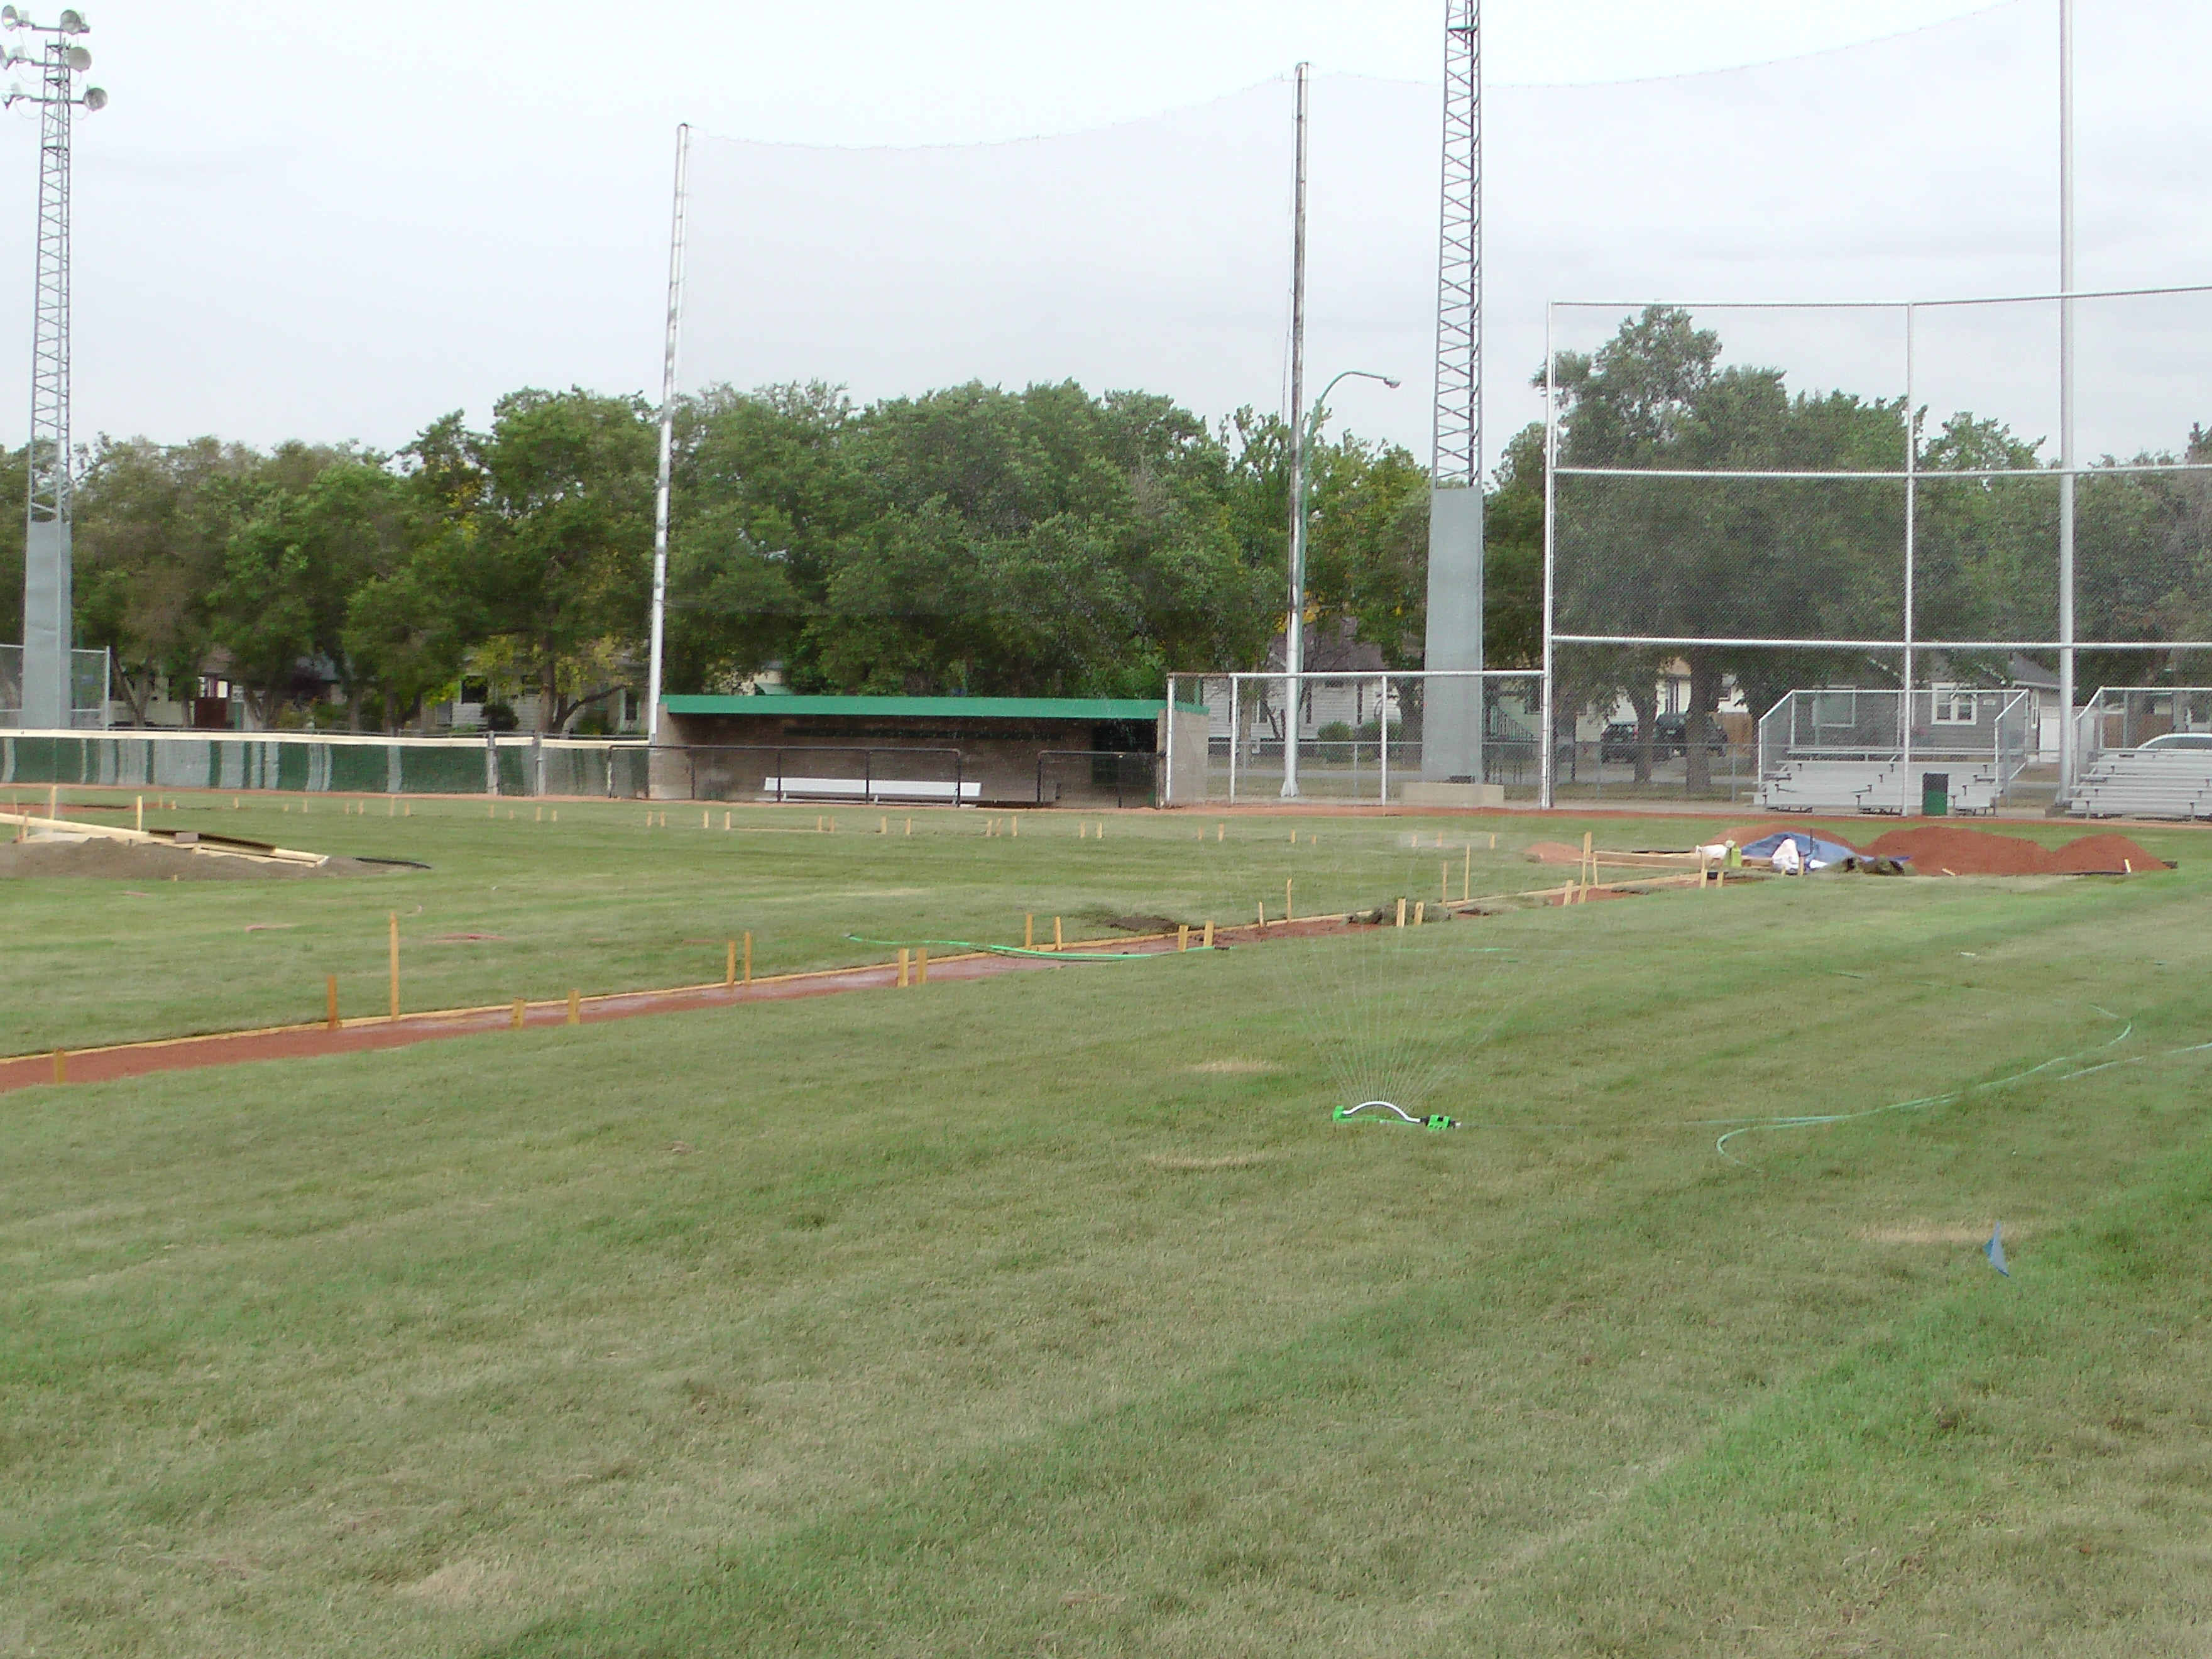 Sept 7 & 8 2018, Optimist Park Field Renovations, sod down being watered - Image 7